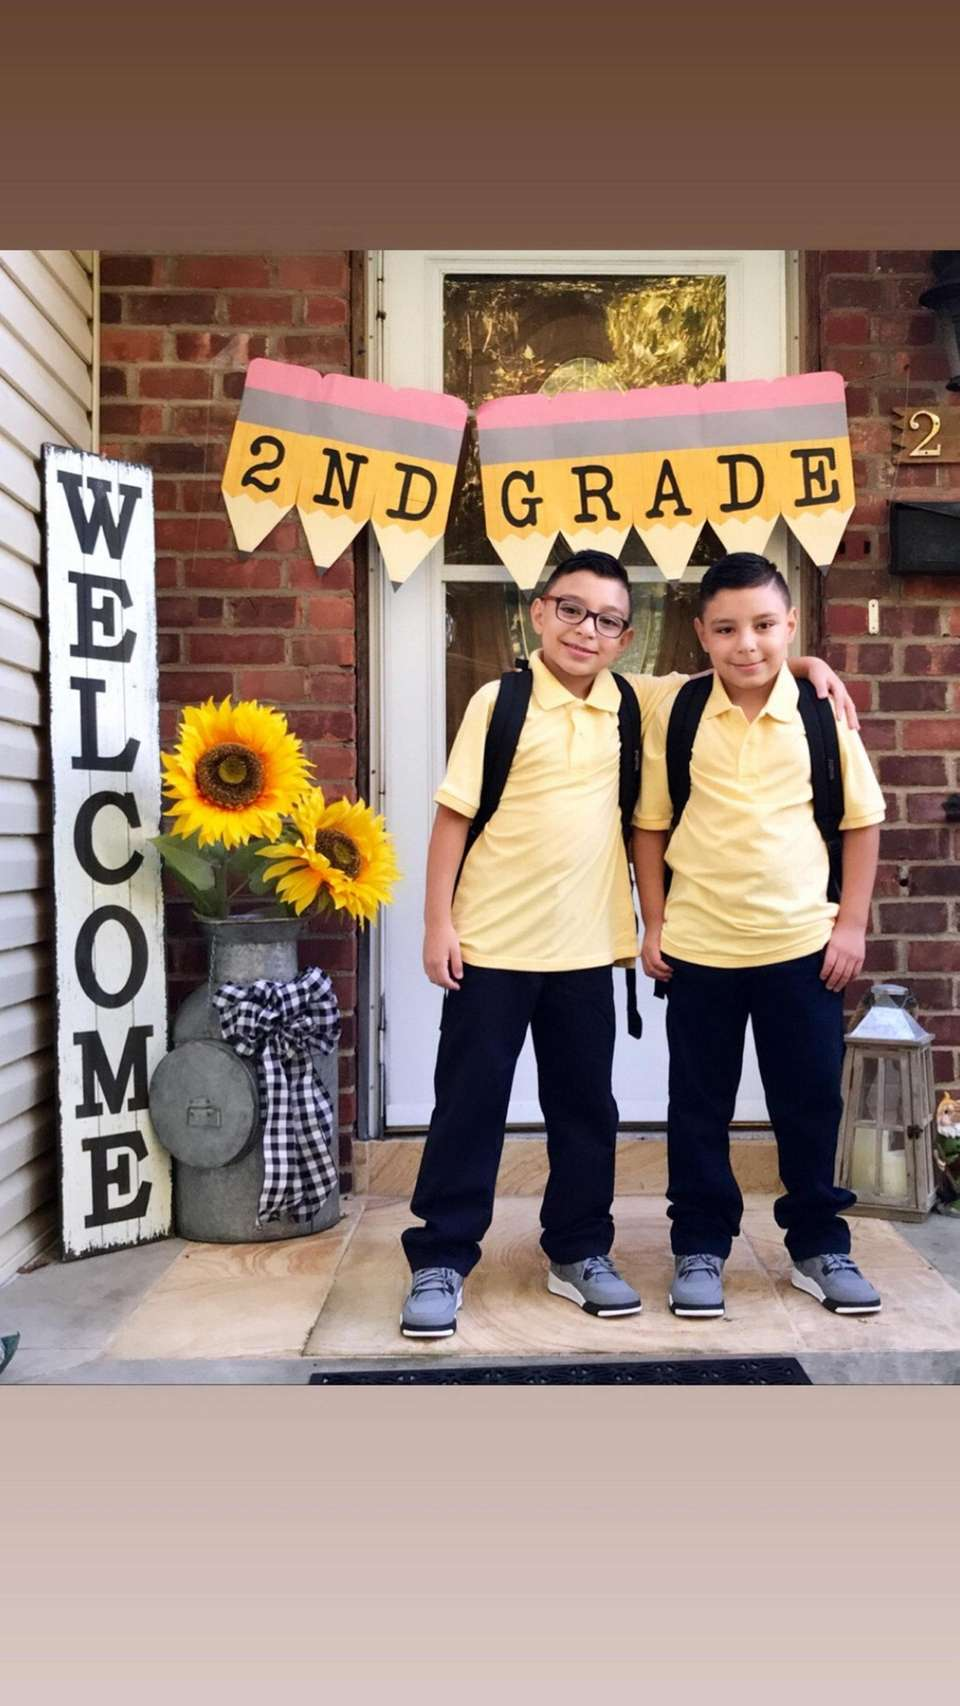 First day of 2nd grade for the twins.